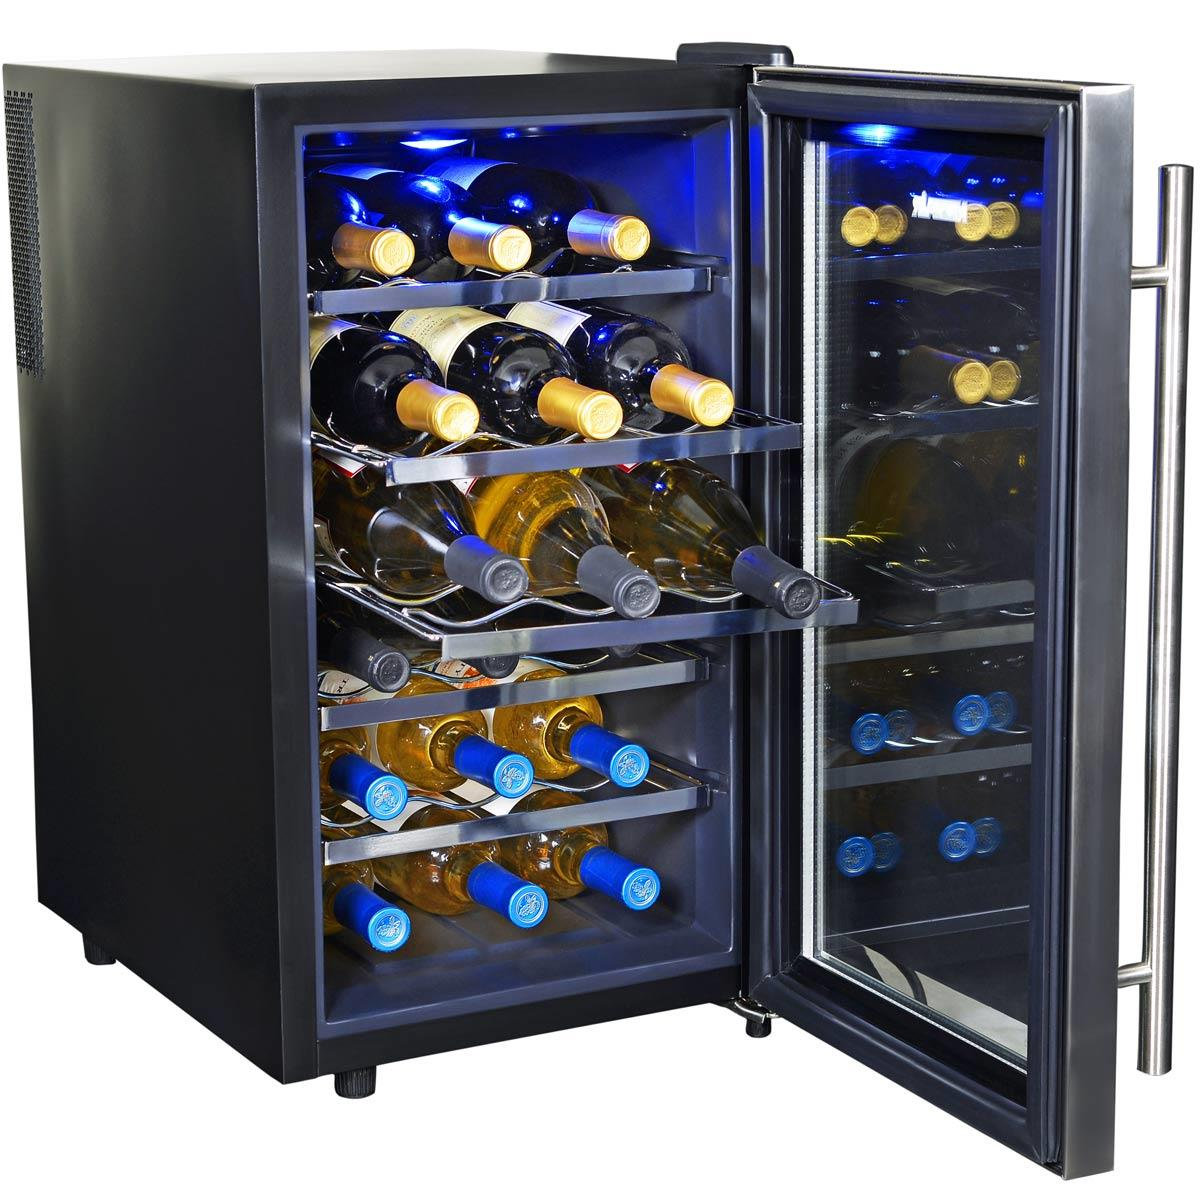 The NewAir AW-181E 18-Bottle Wine Cooler Is Sturdy and Affordable